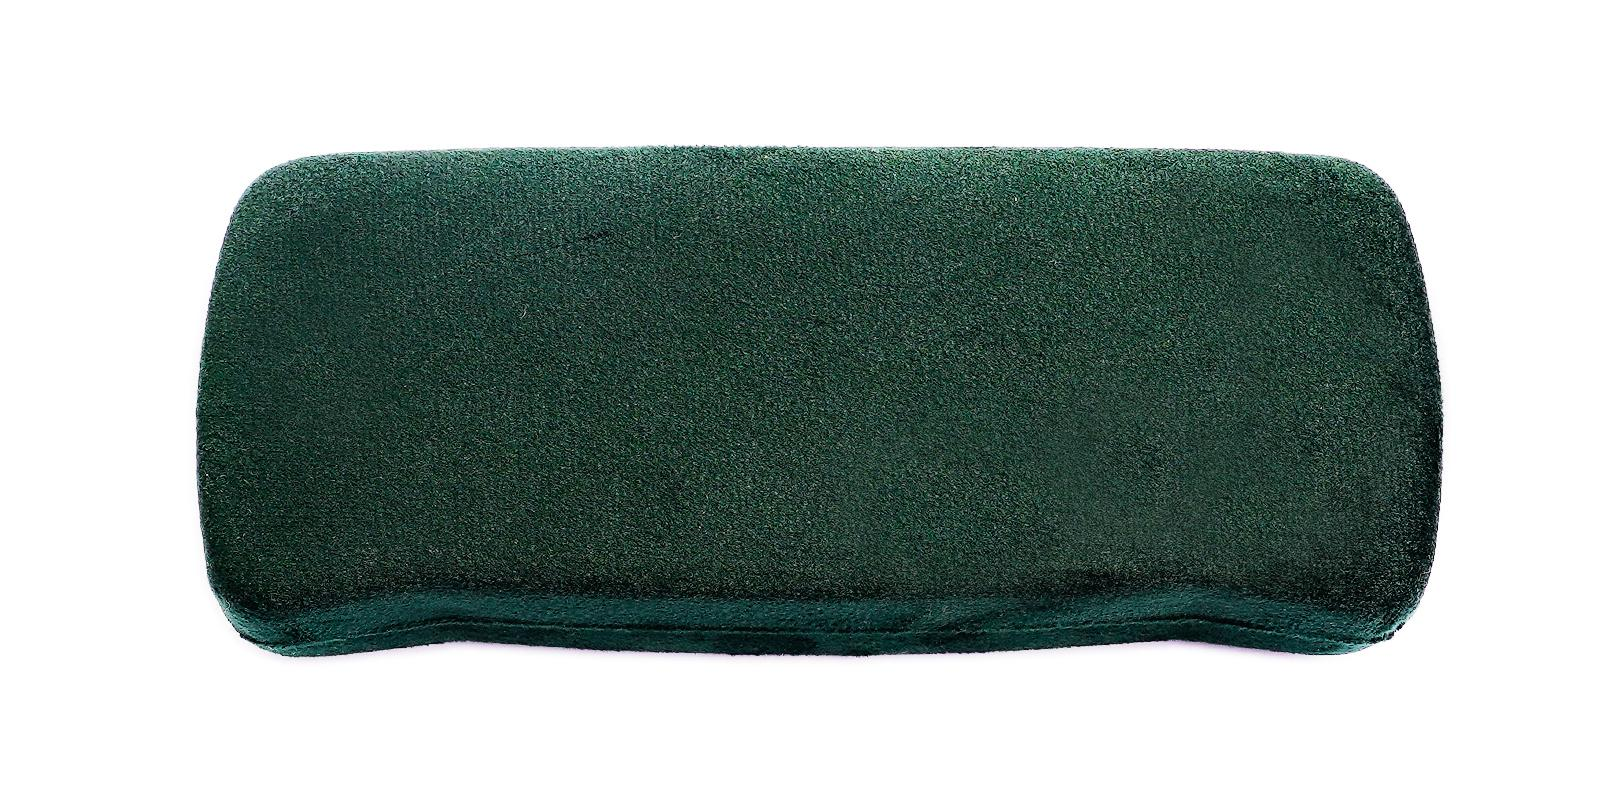 Velvet Glasses Case Green   Frames from ABBE Glasses